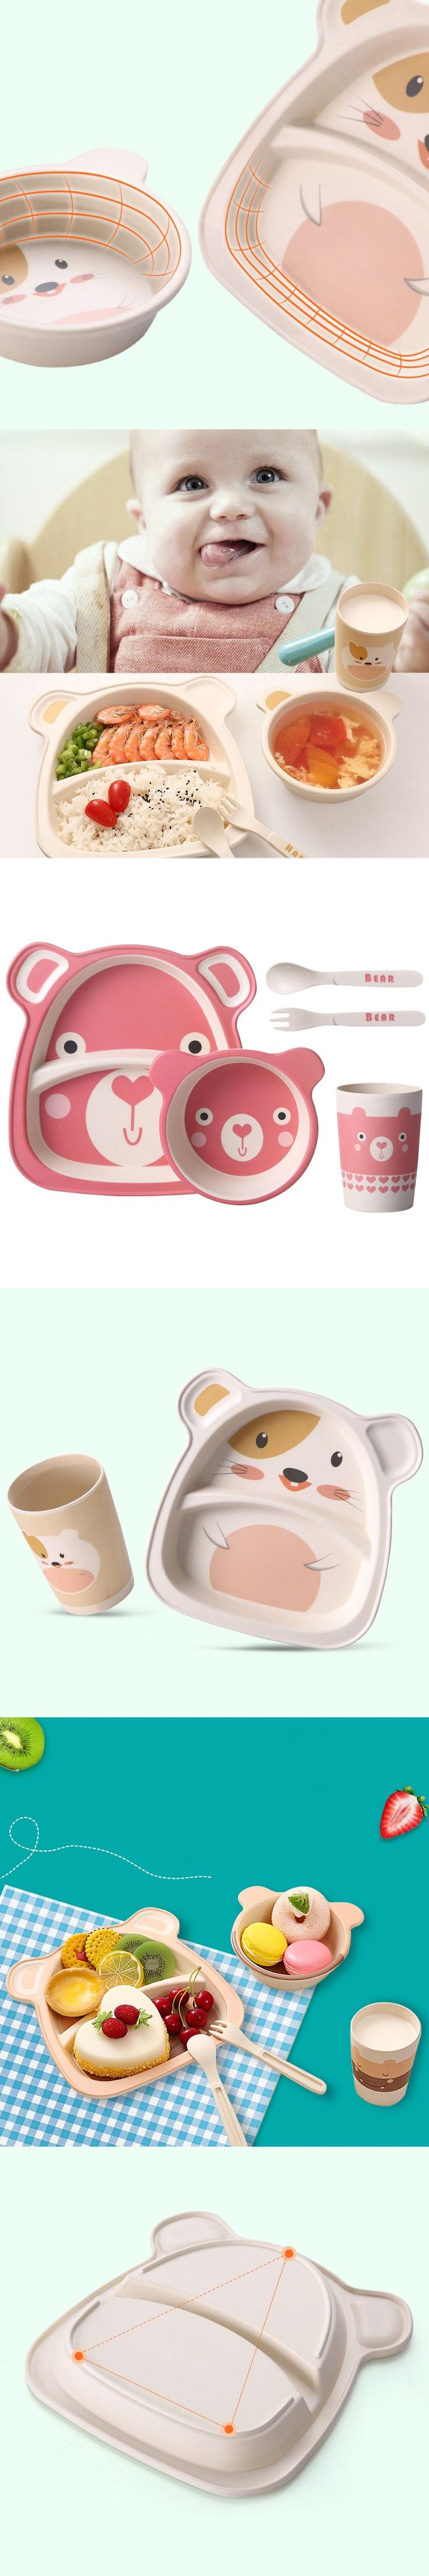 Fashion Kids Feeding Dishes Tableware Sets Children Bamboo Fiber Lunch Dinnerware Box With Compartment School Food Container H1